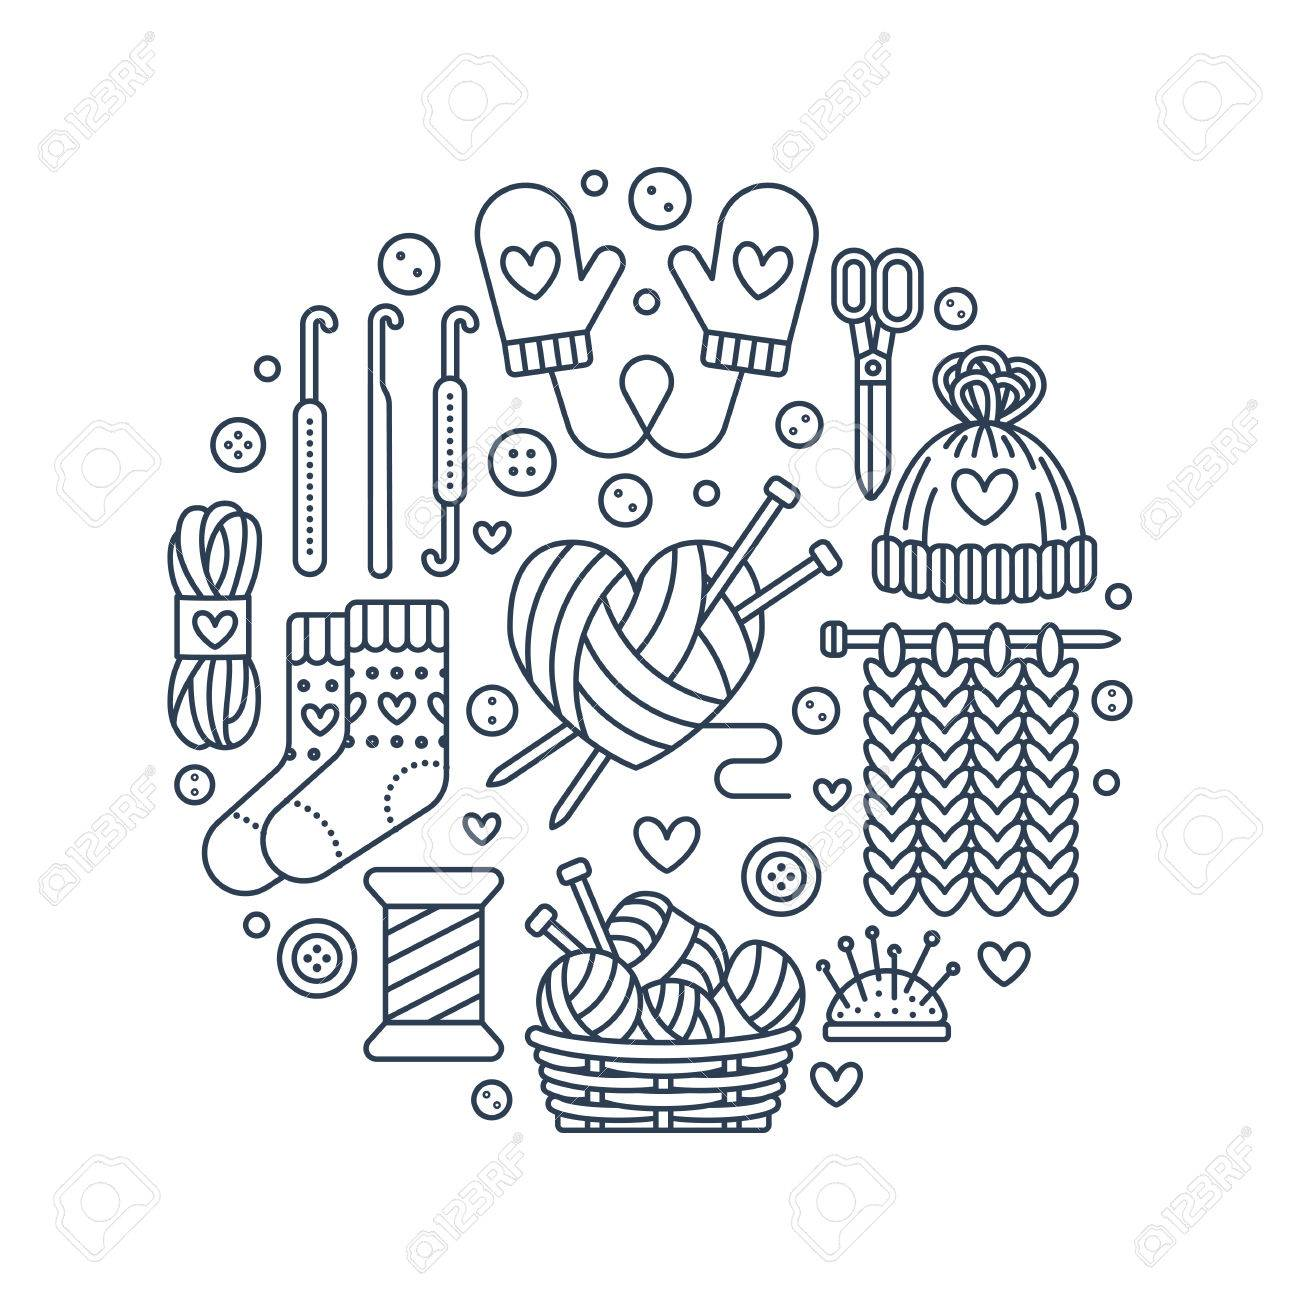 Knitting Crochet Hand Made Banner Illustration Vector Line Royalty Free Cliparts Vectors And Stock Illustration Image 71424158